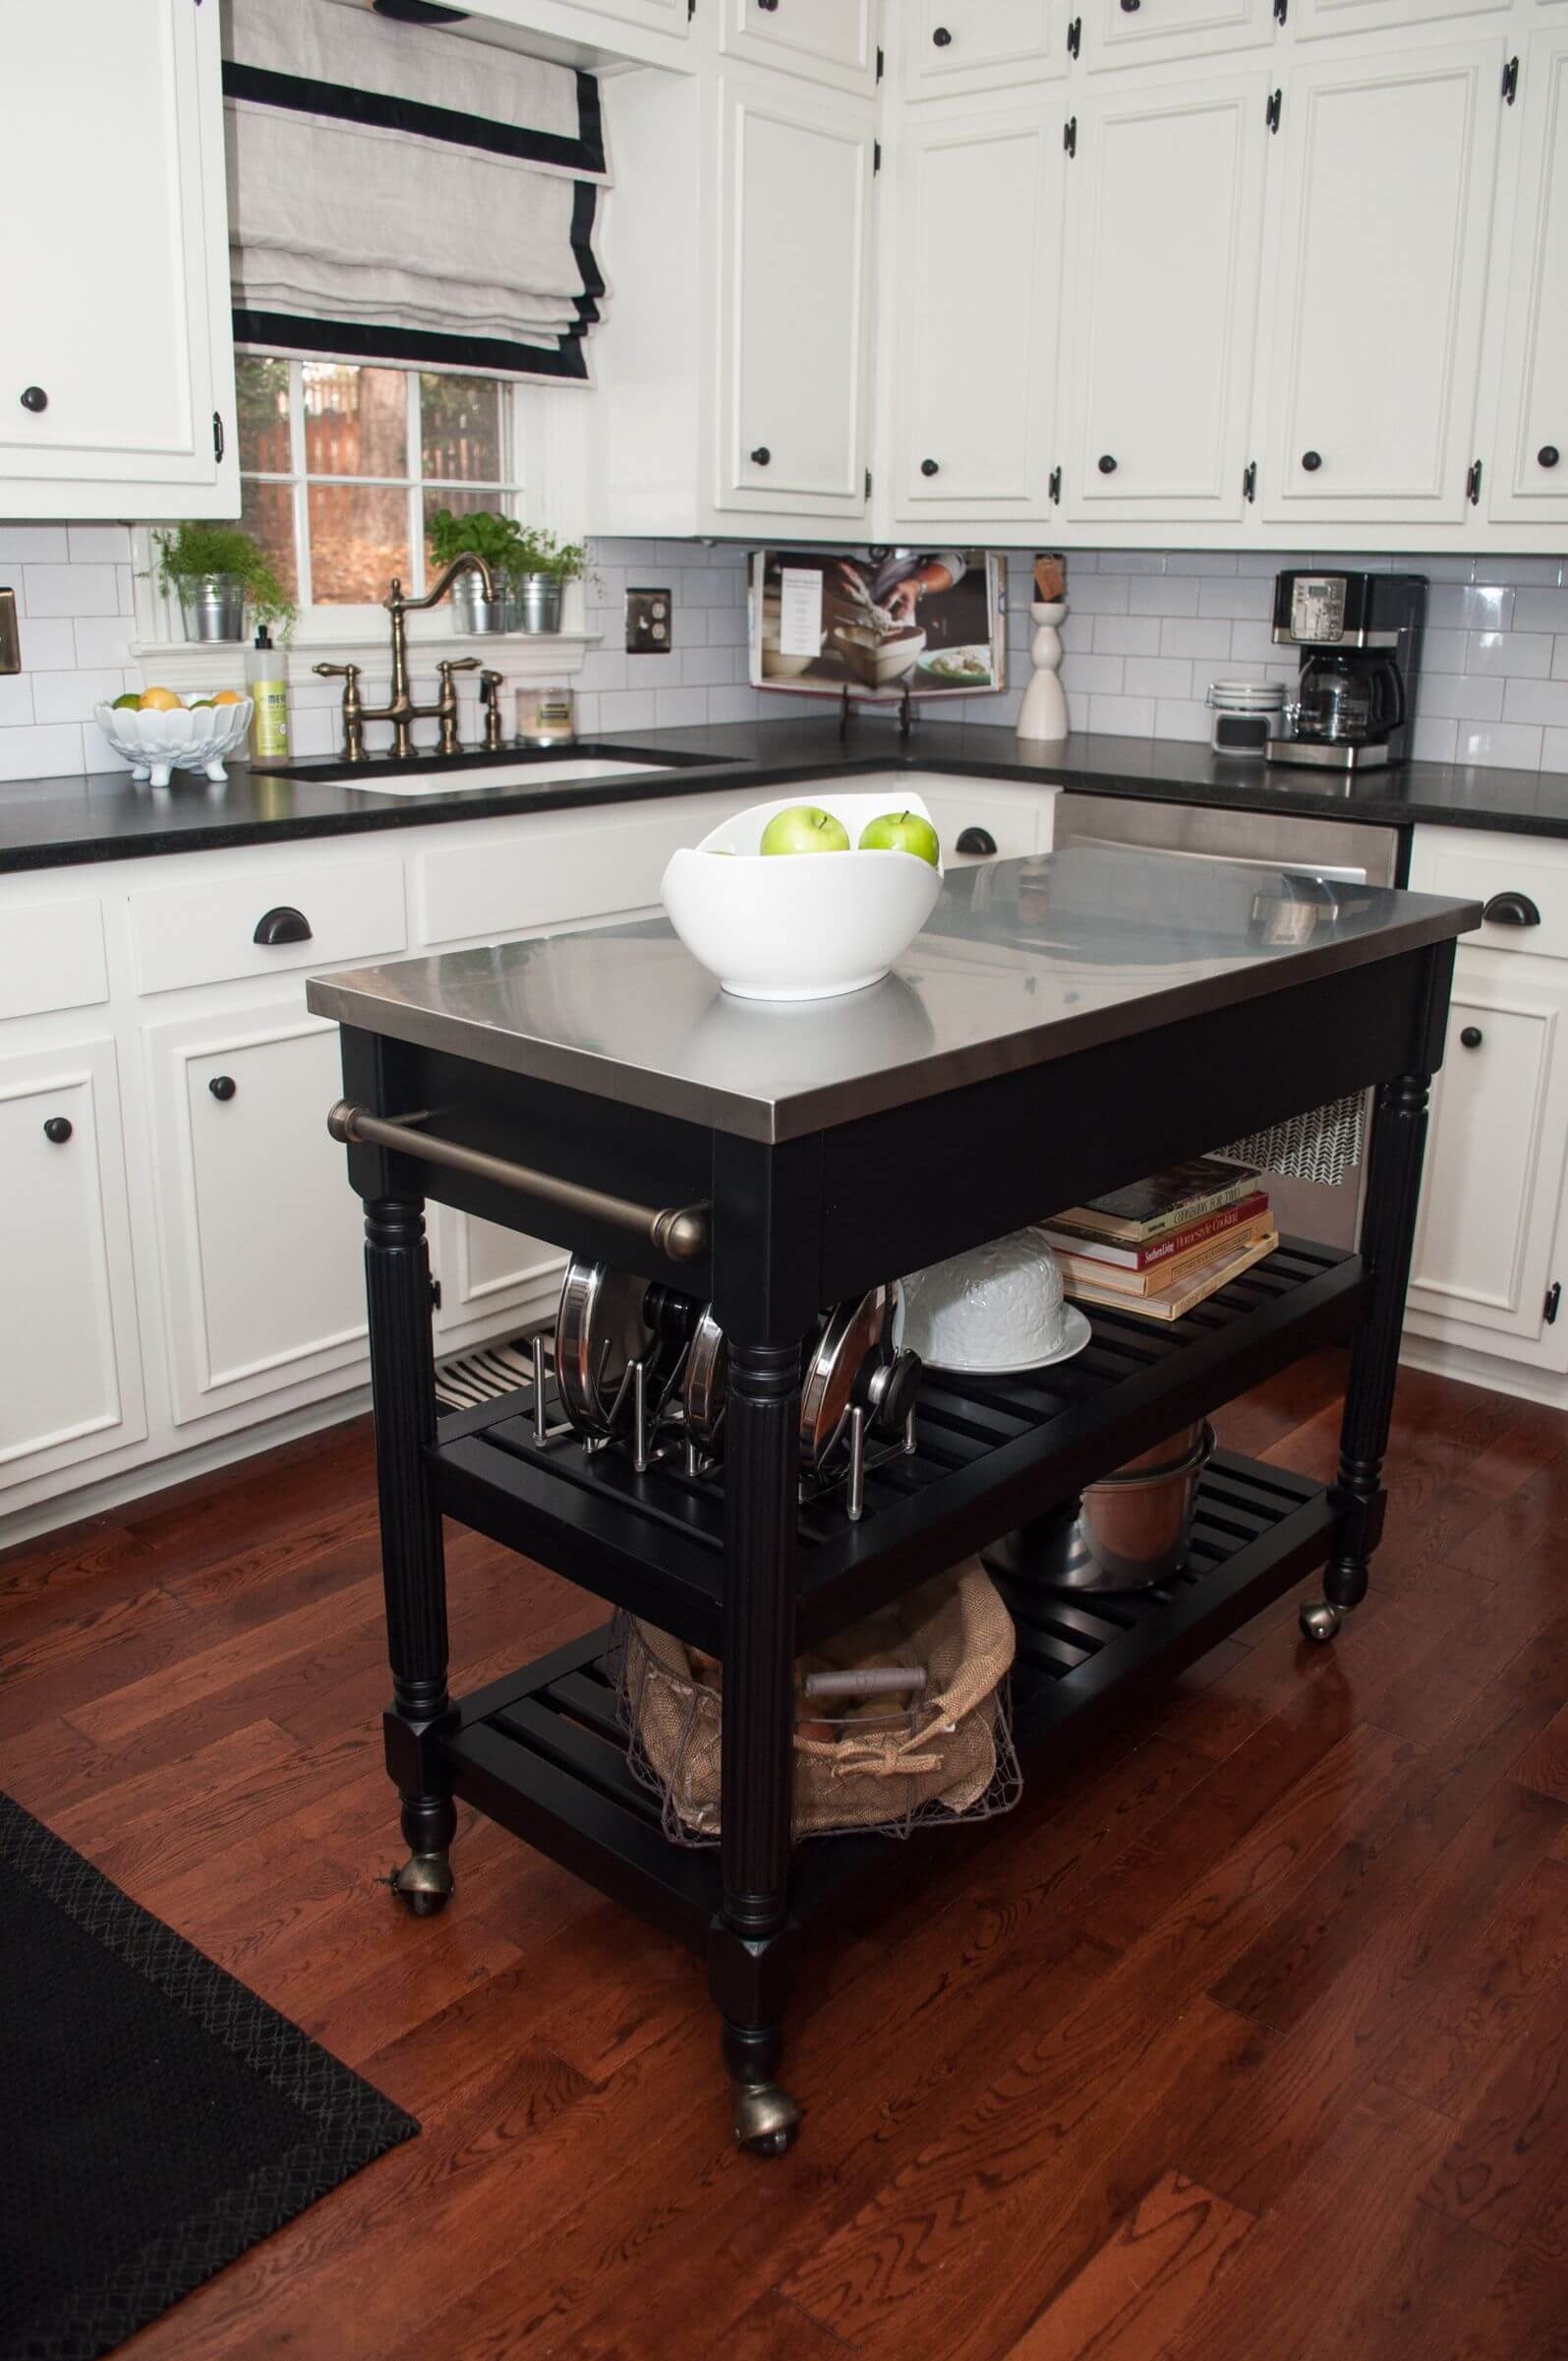 white kitchen with dark portable kitchen island on wheels - Kitchen Island On Wheels